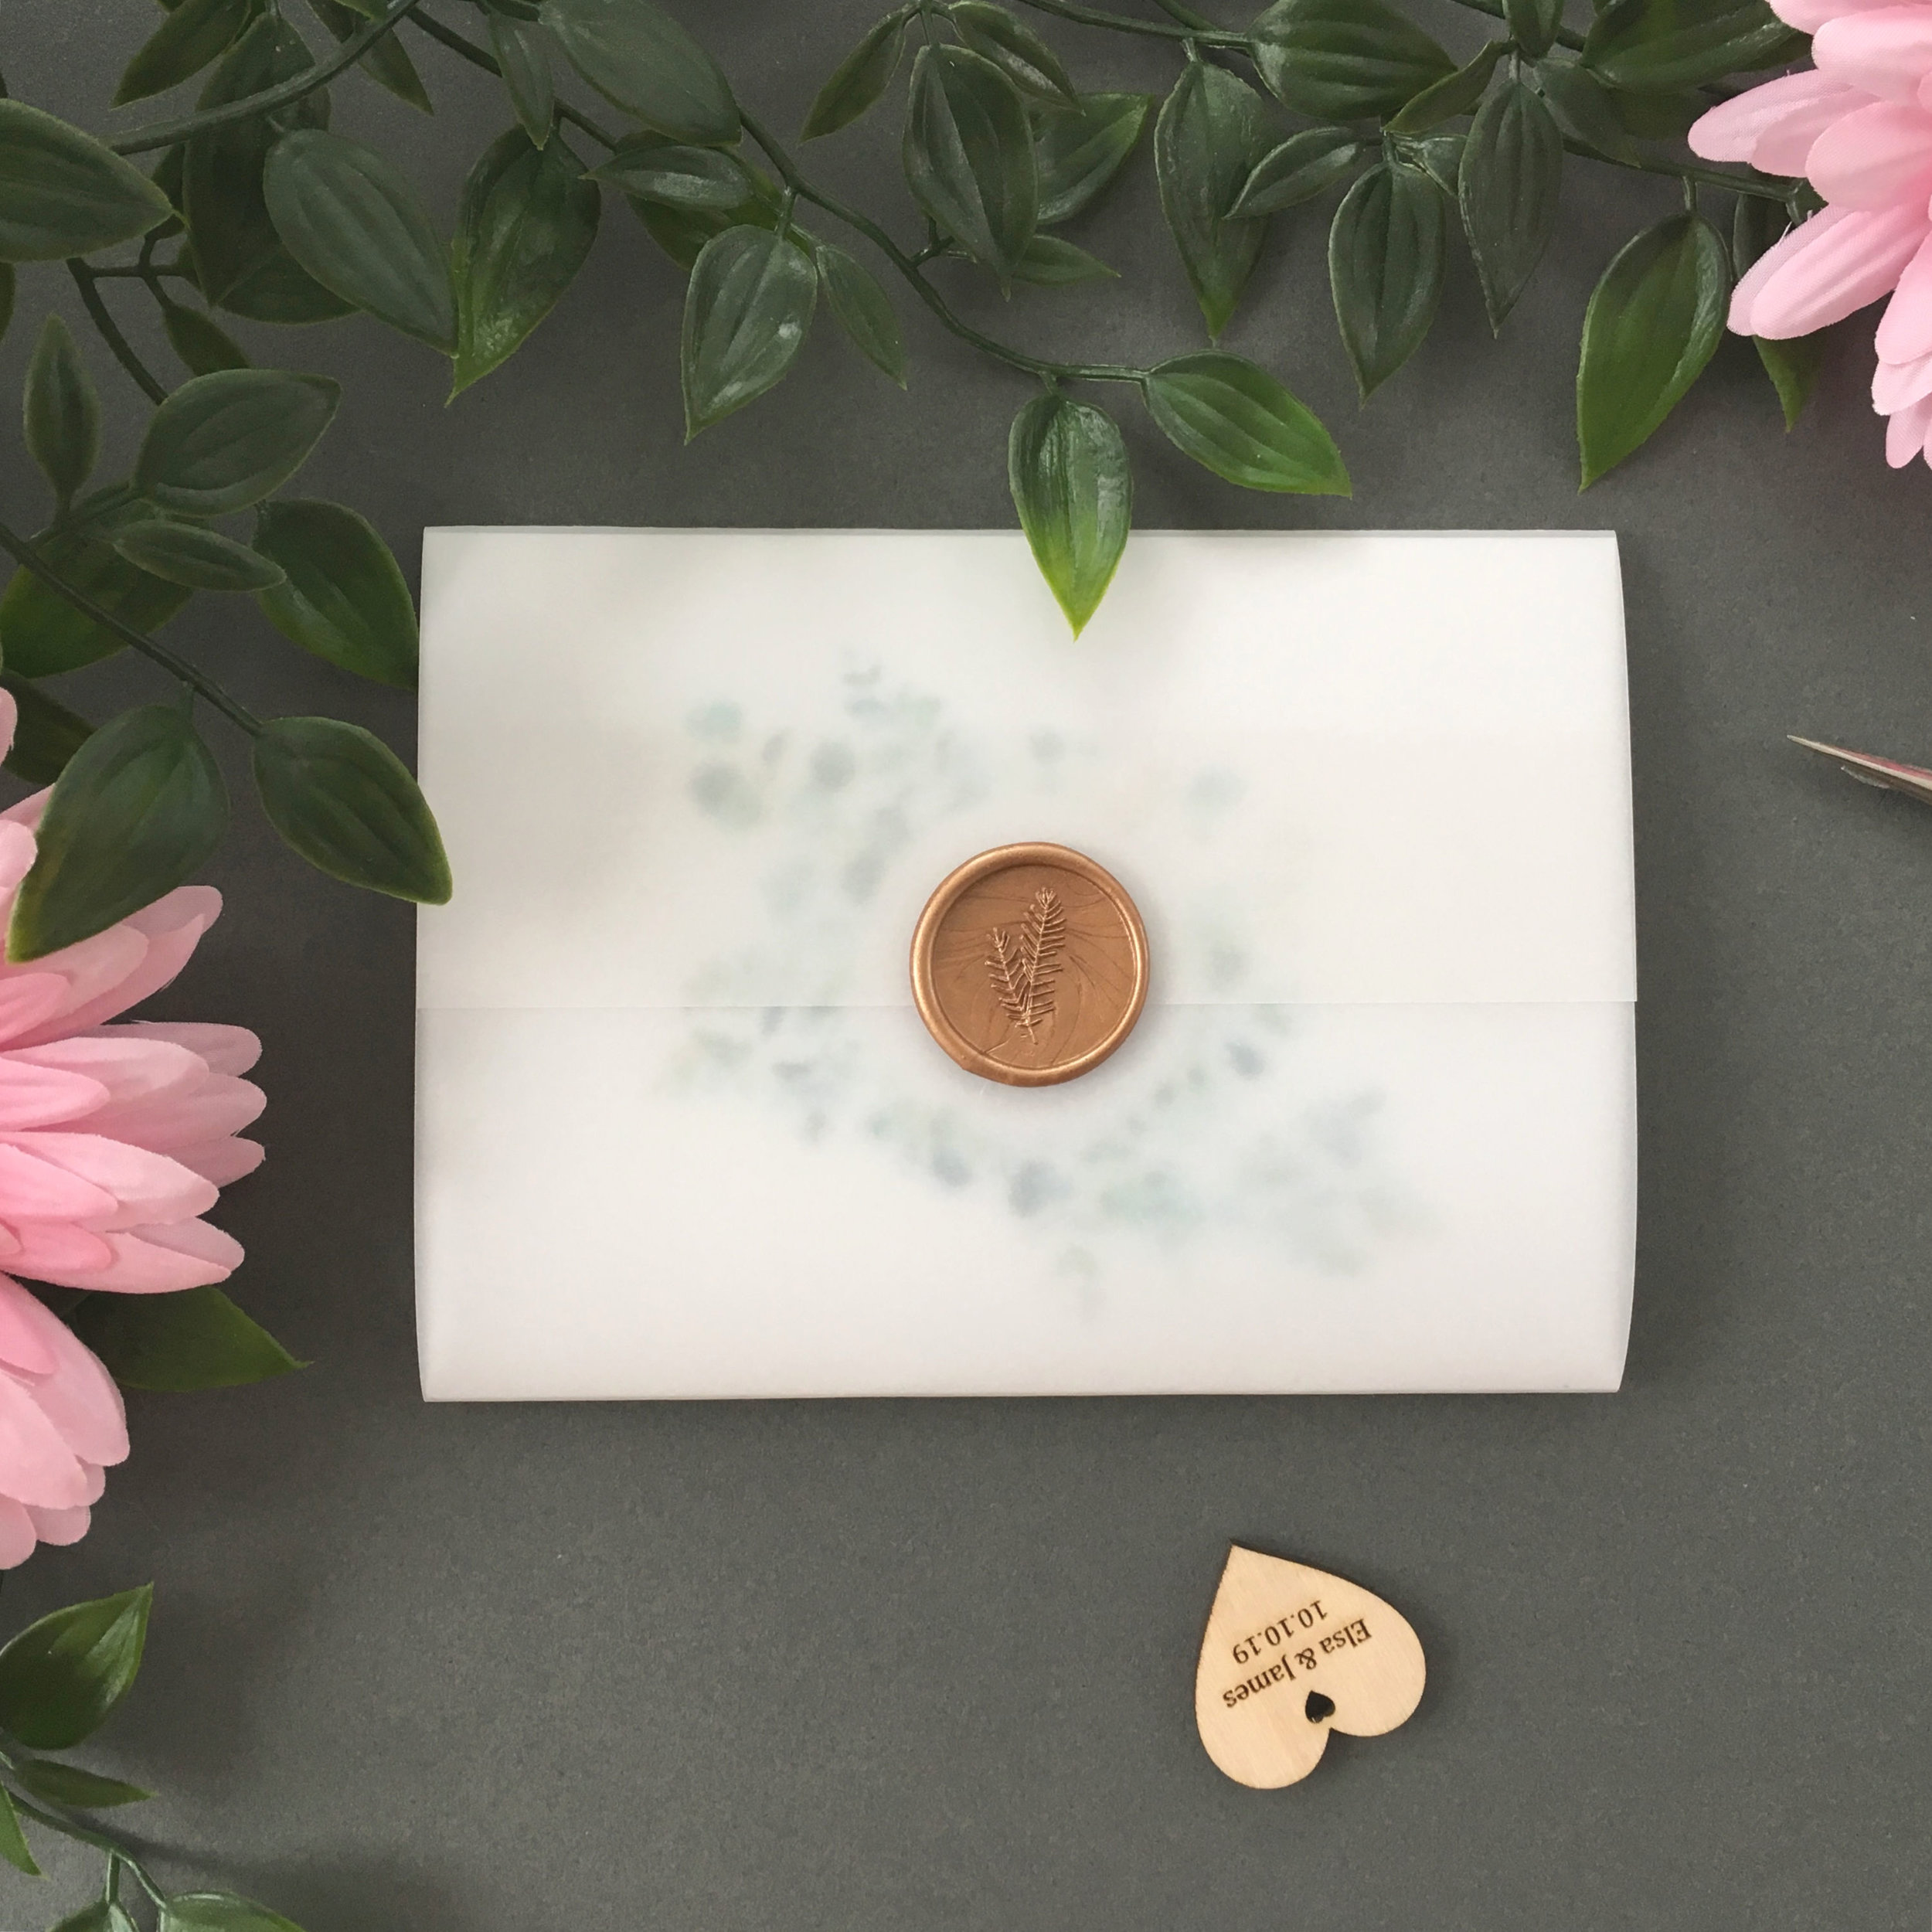 Northwood - Concertina Invitation with Vellum Jacket and Wax Seal